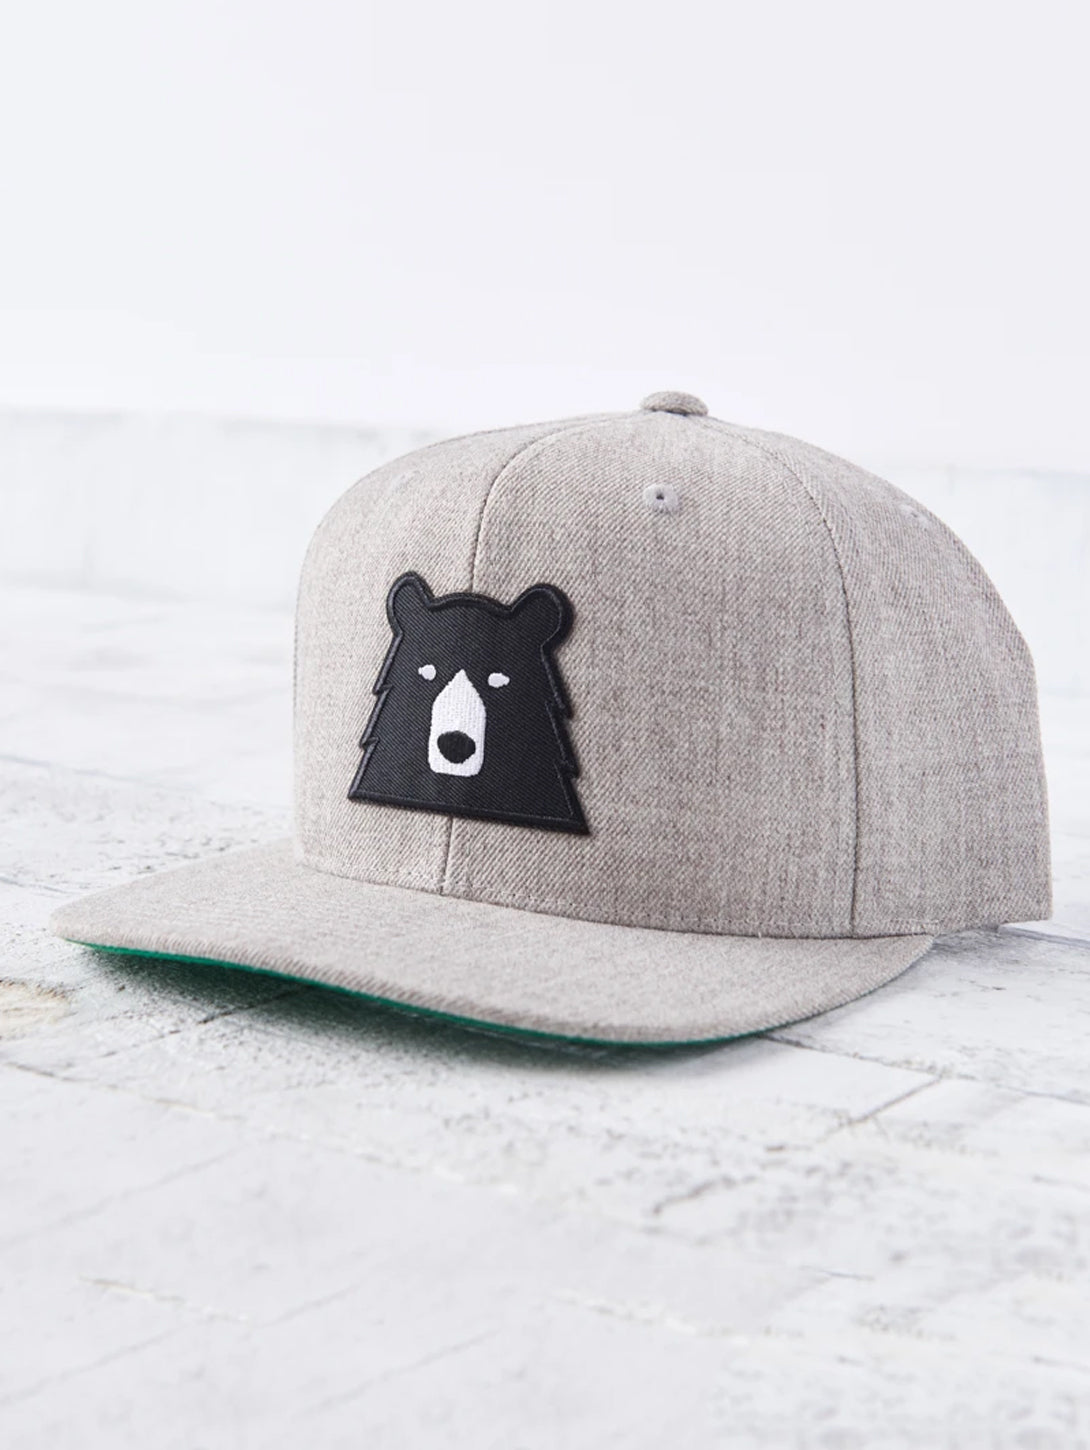 Snapback Bear Hat - Heather/Black-North Standard Trading Post-Over the Rainbow